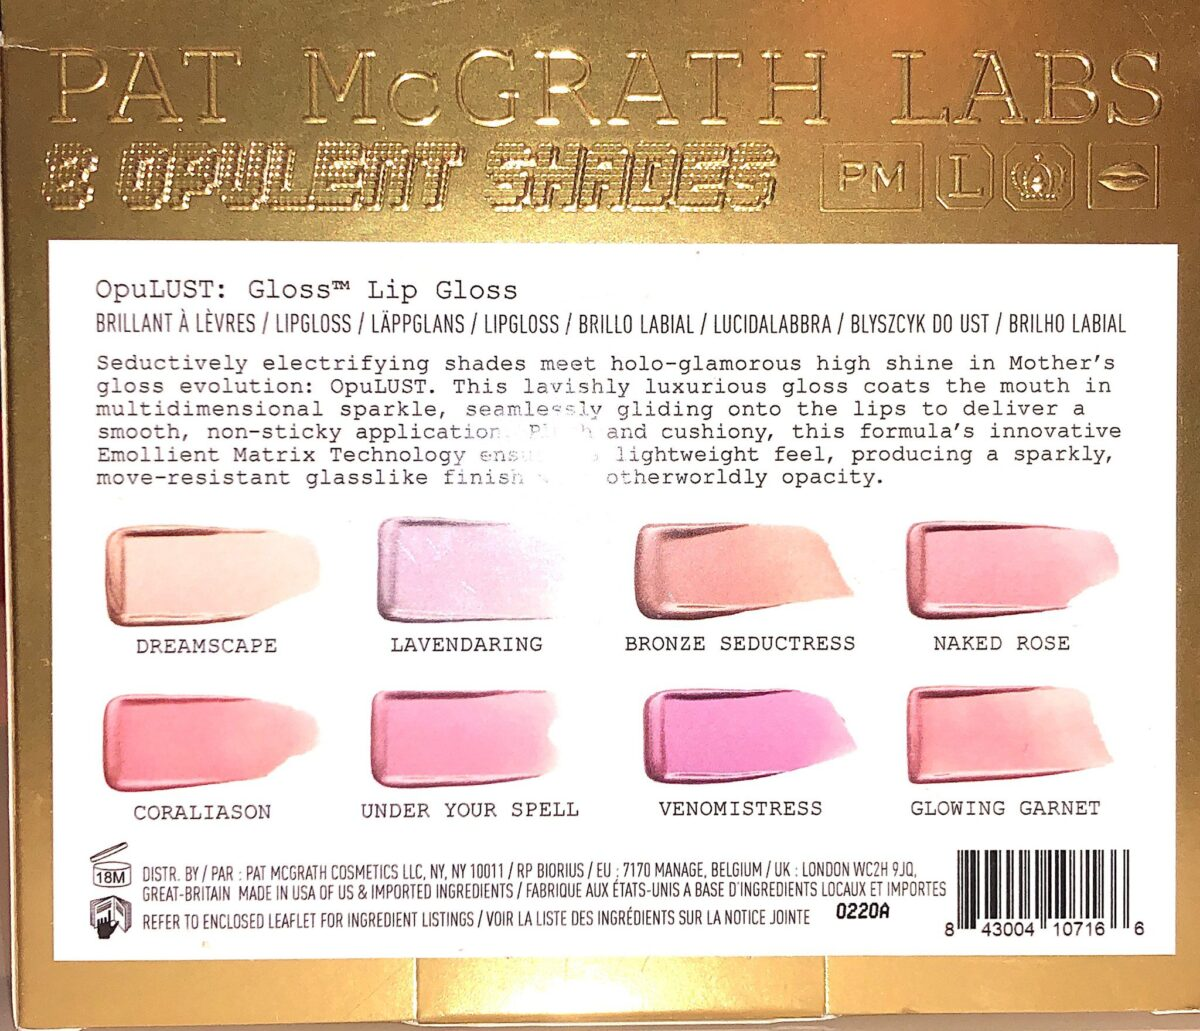 THE BACK OF THE OpuLUST LIP GLOSS BOX